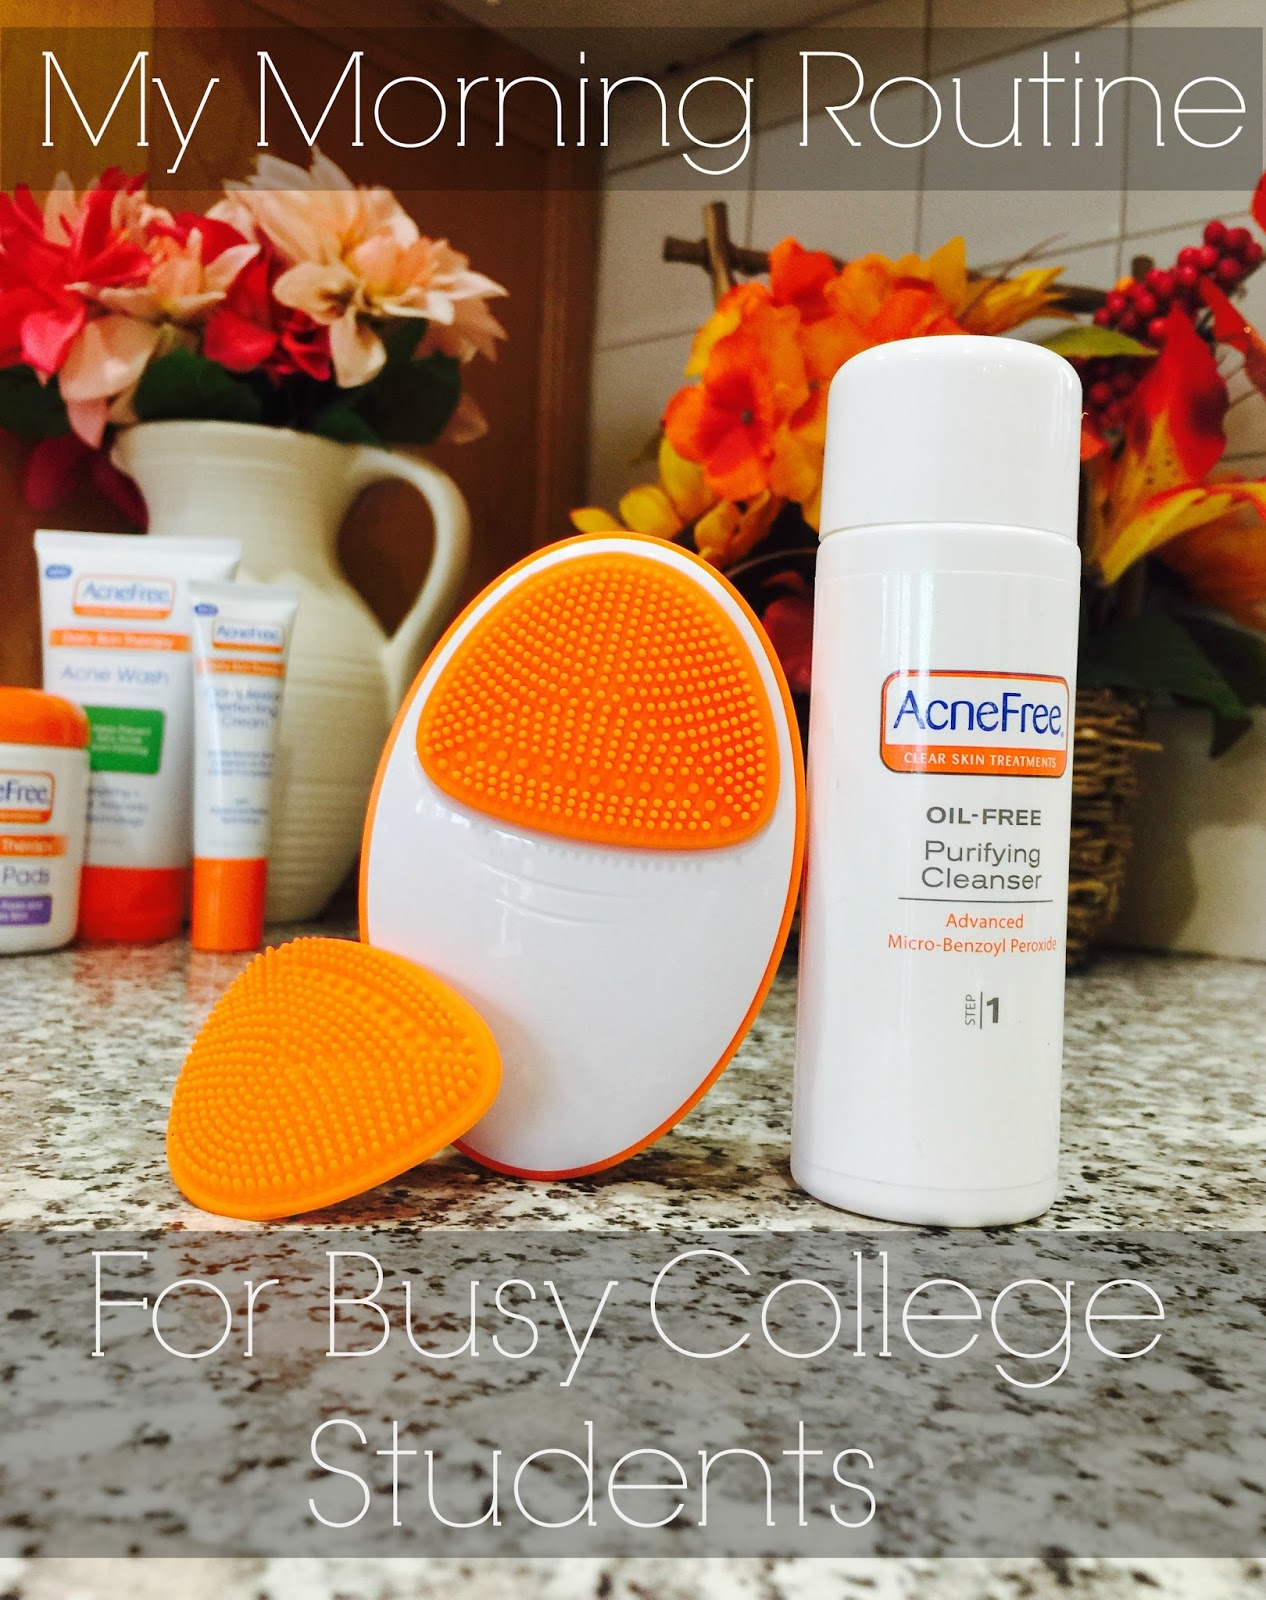 acnefree, acnefree review, morning beauty routine, morning routine with acnefree,